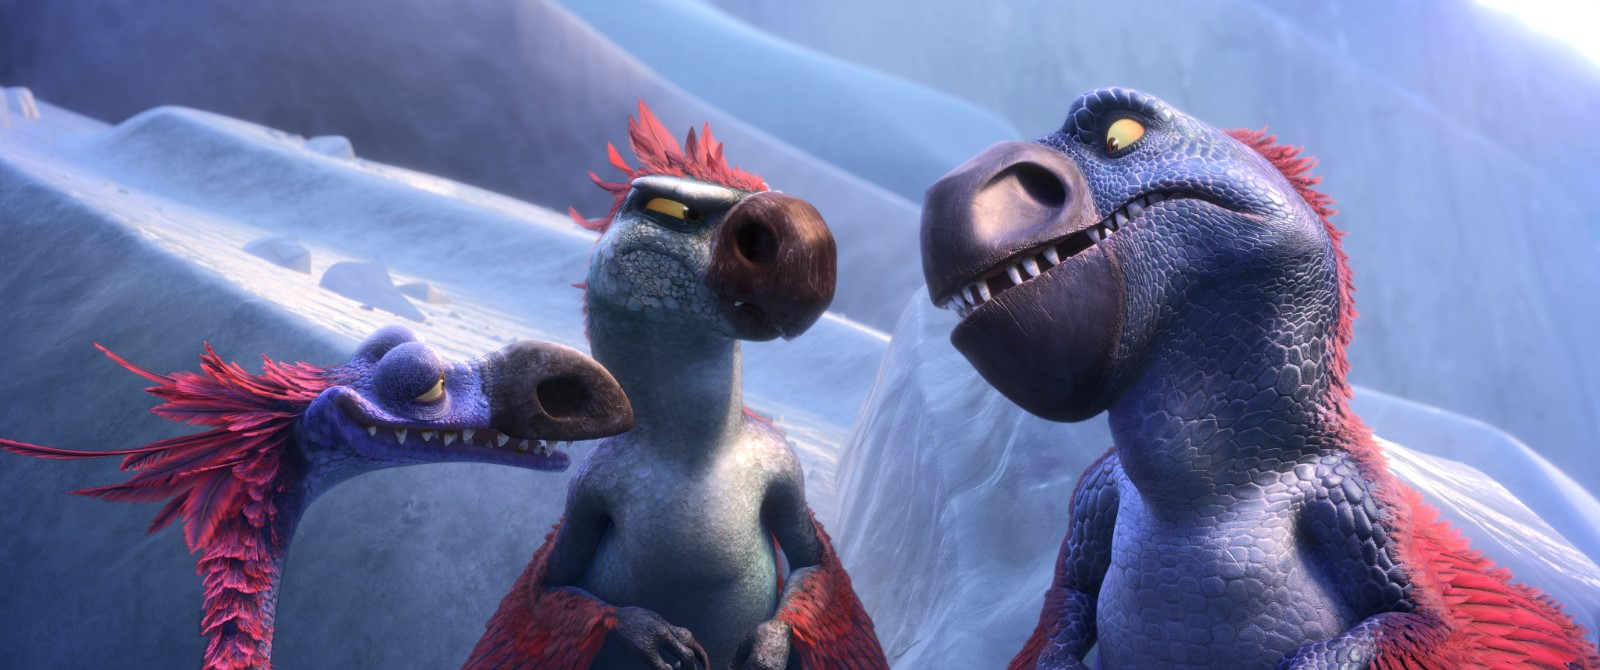 L'ÂGE DE GLACE LES LOIS DE L'UNIVERS - Image 11 du film Saga Ice Age 2016 Blue Sky Scrat Sid Mango - Go with the Blog